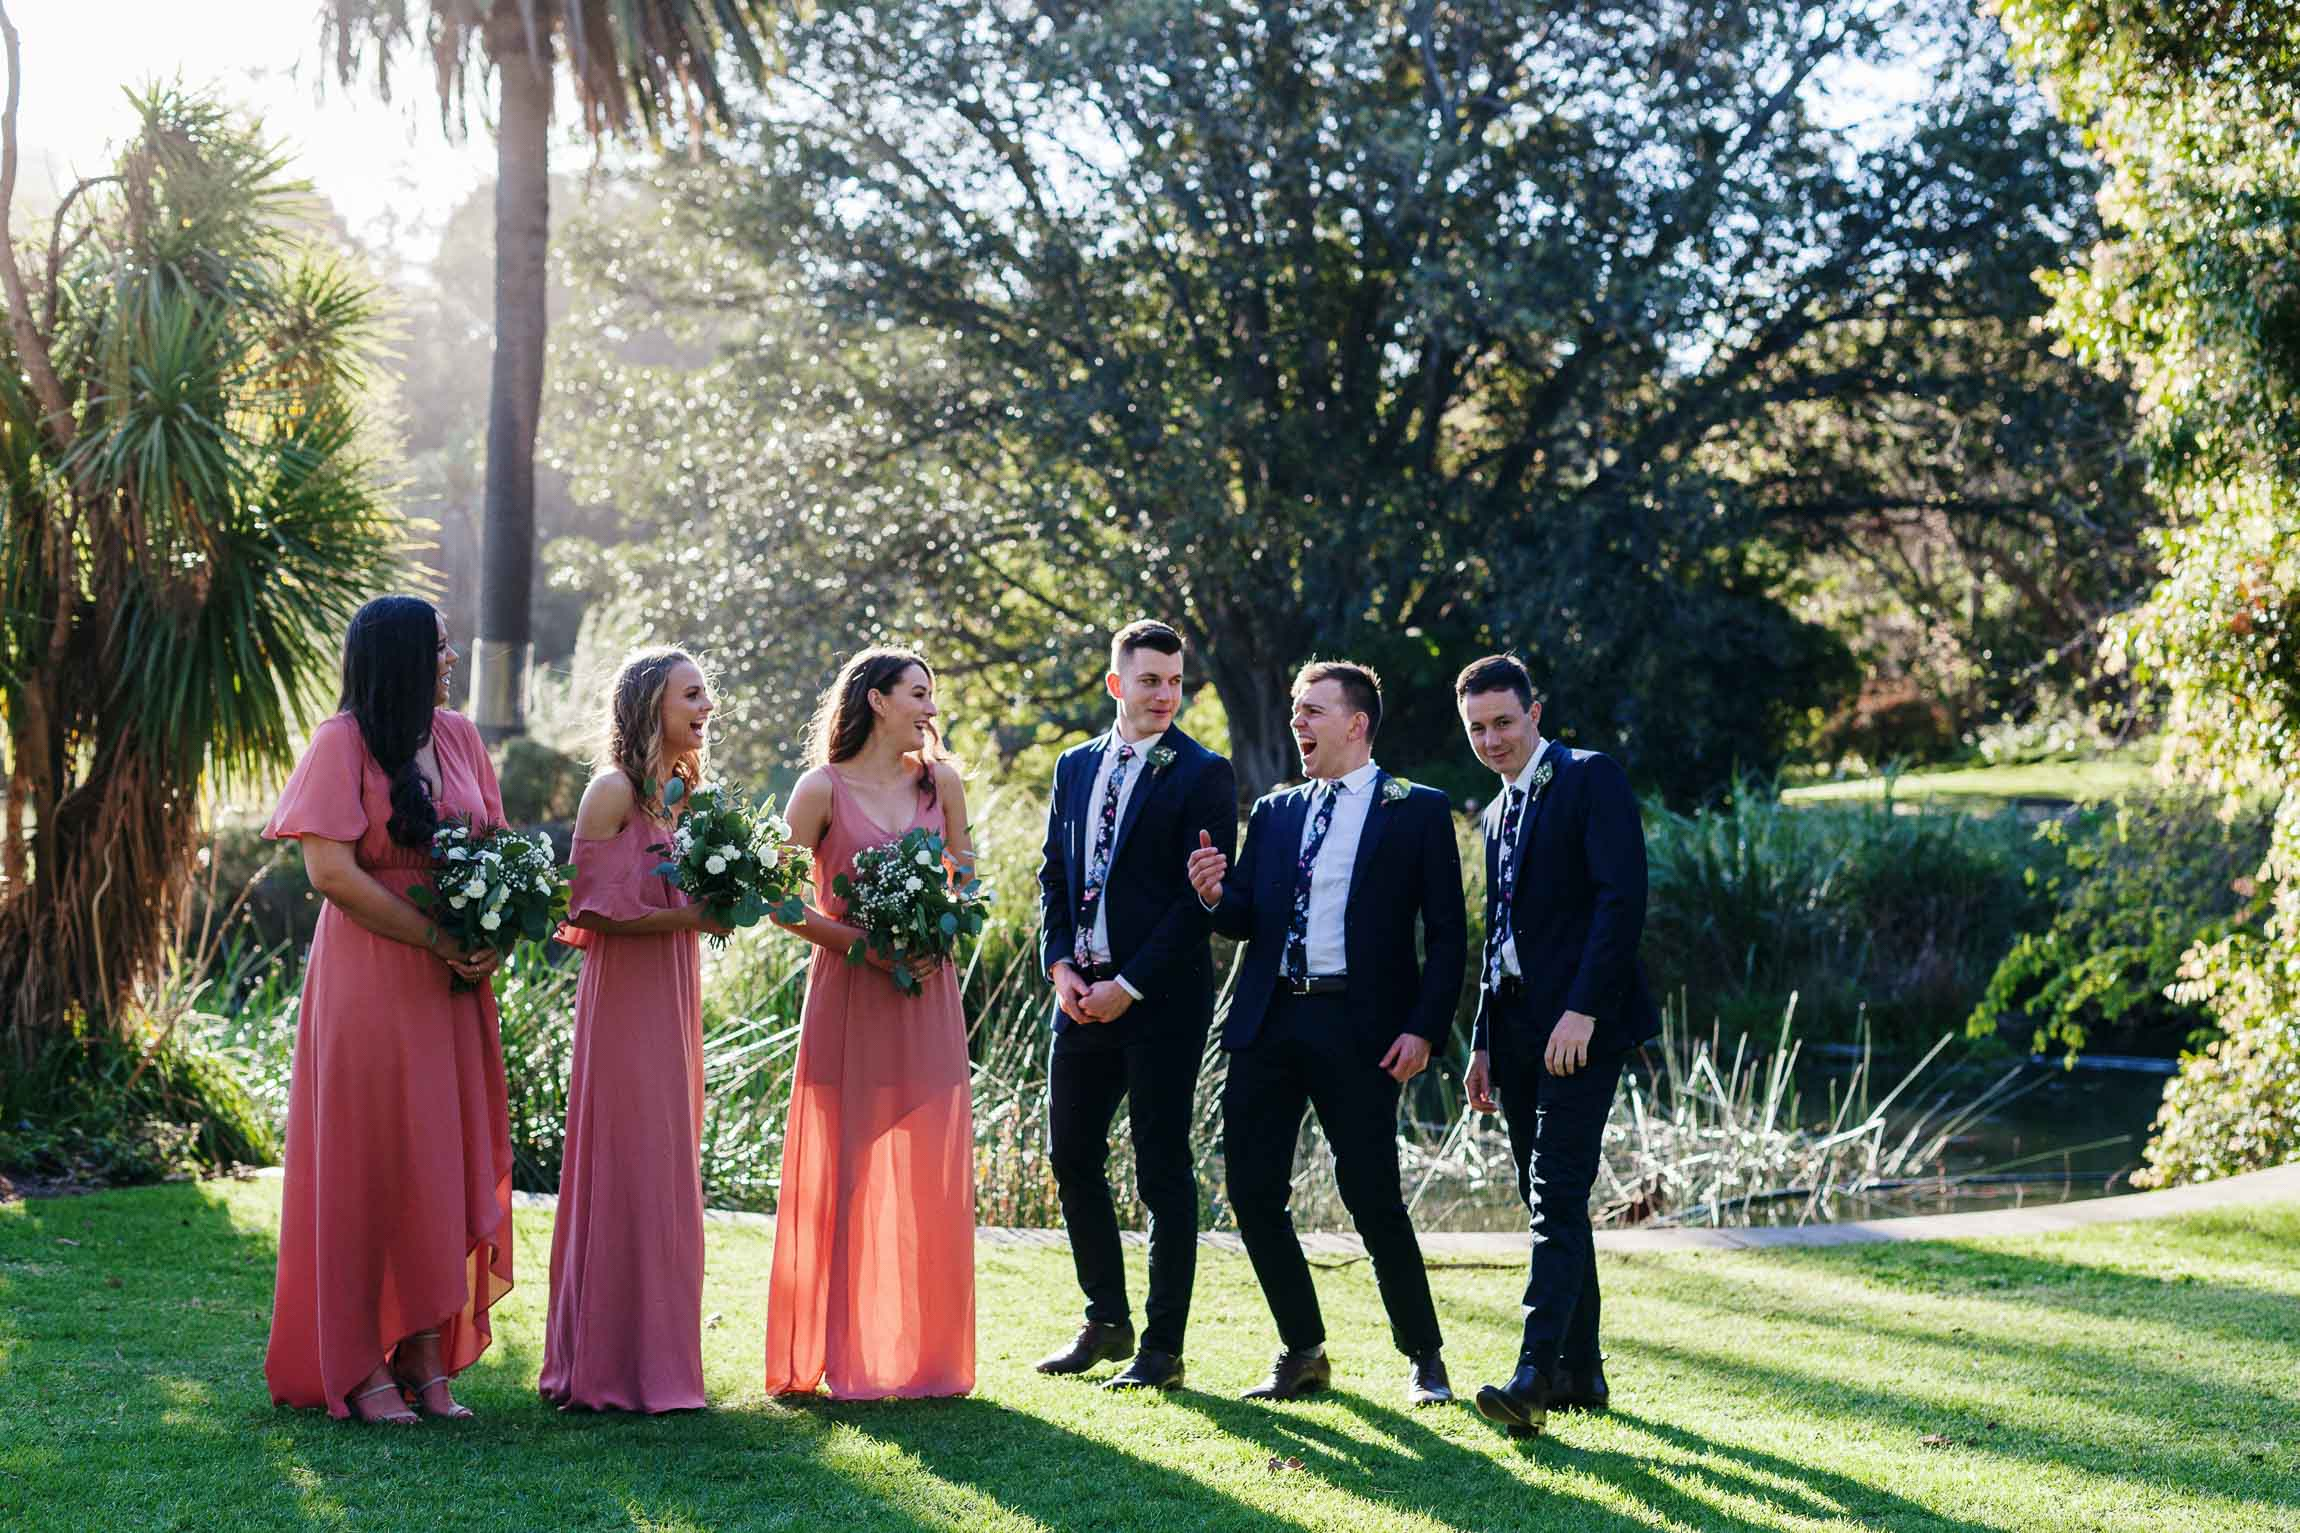 lachlan-scallion-melbourne-victoria-austrlia-mornington-peninsula-candid-relaxed-natural-chilled-wedding-photographyglasshaus-richmond-428.jpg